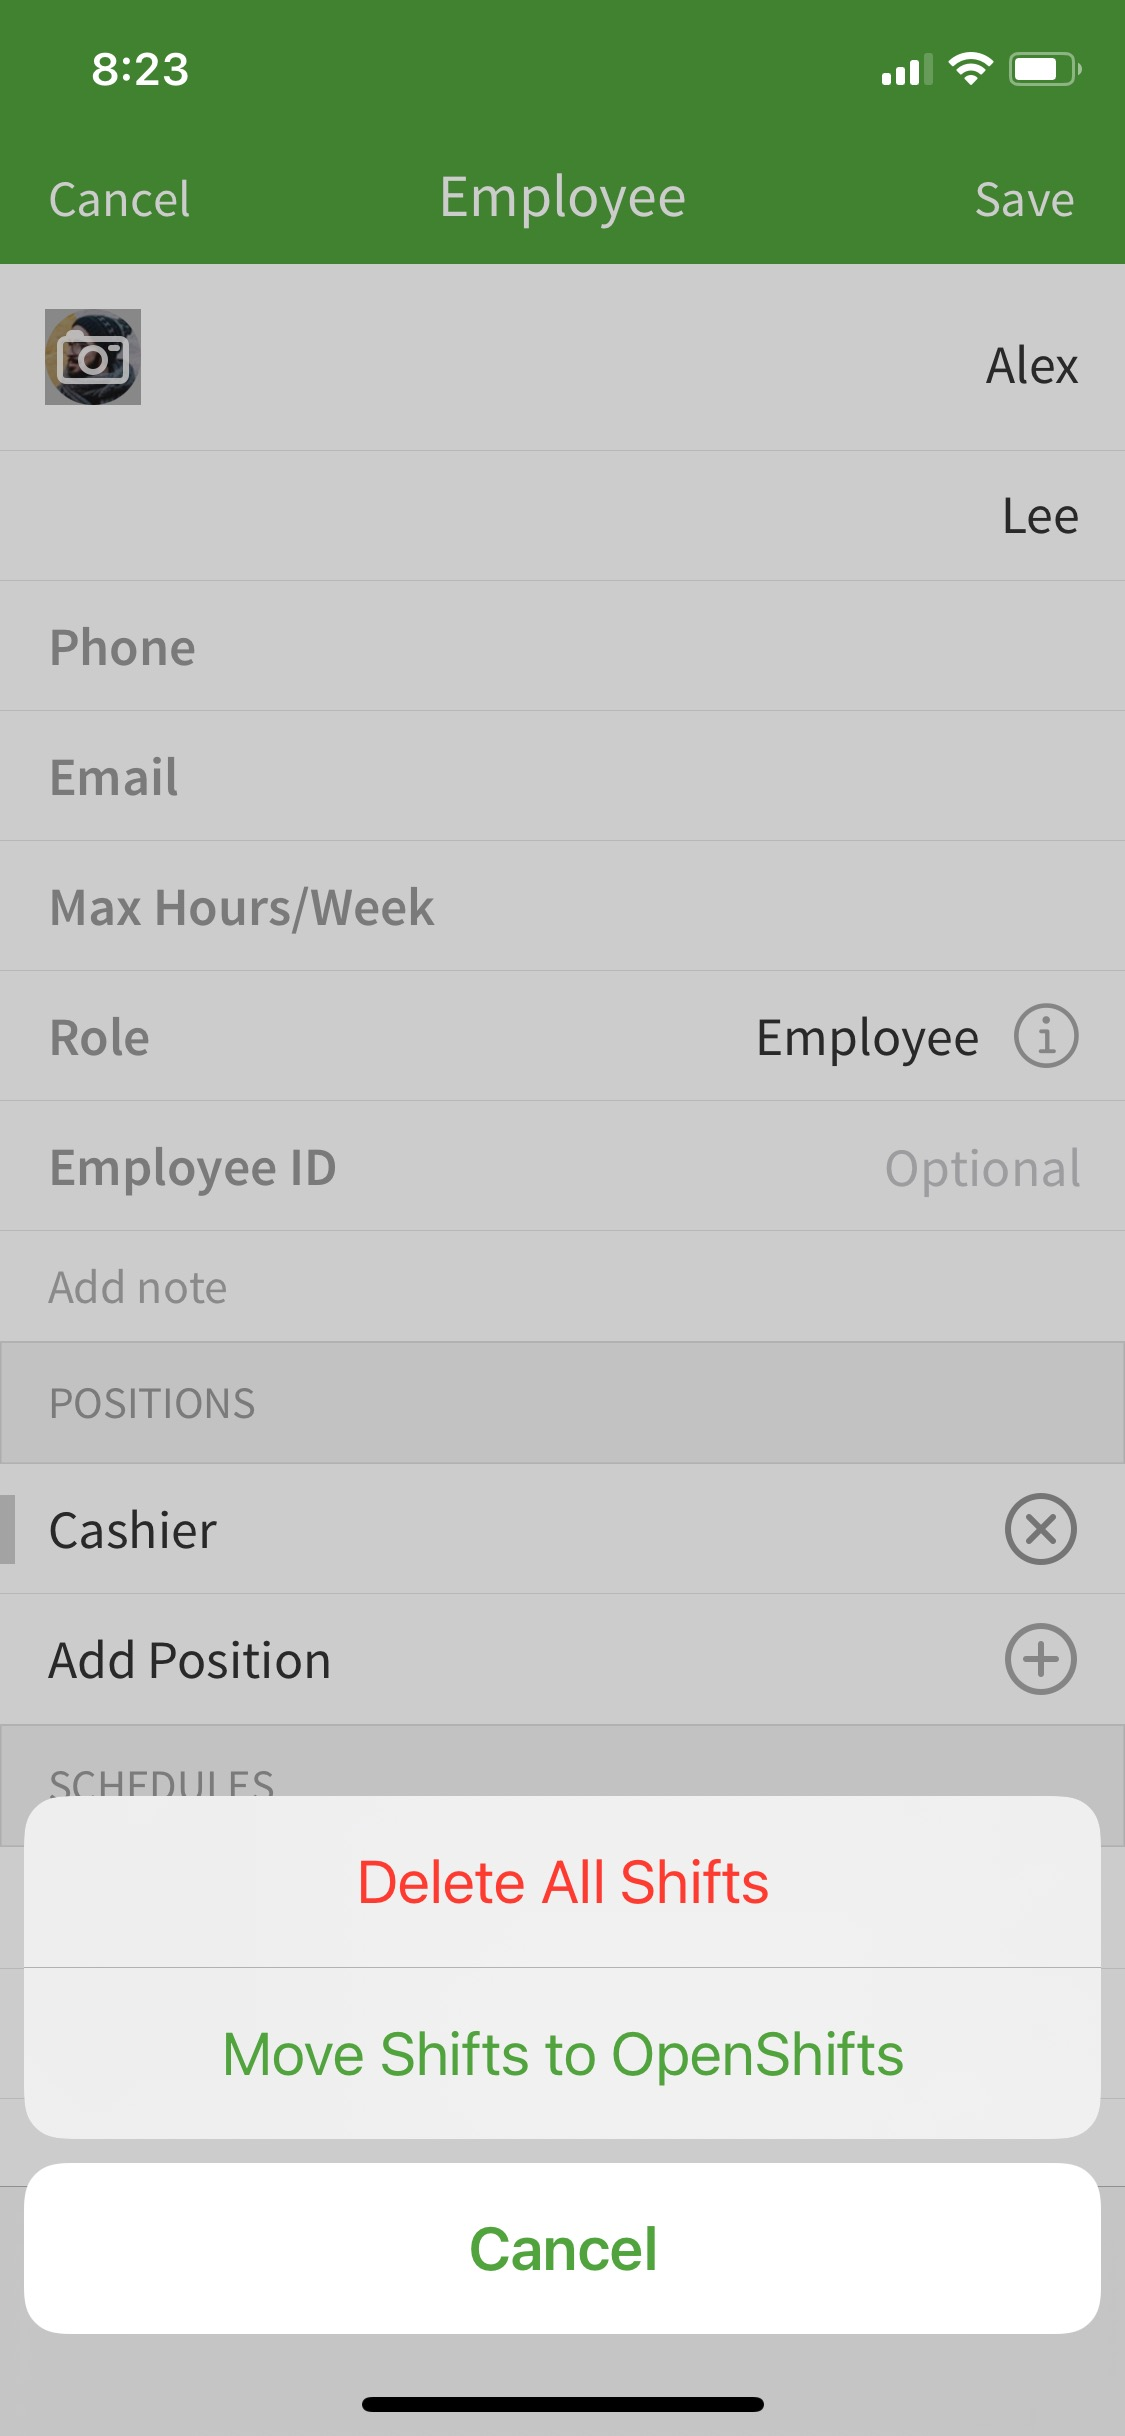 message to delete shifts or re-assign to open